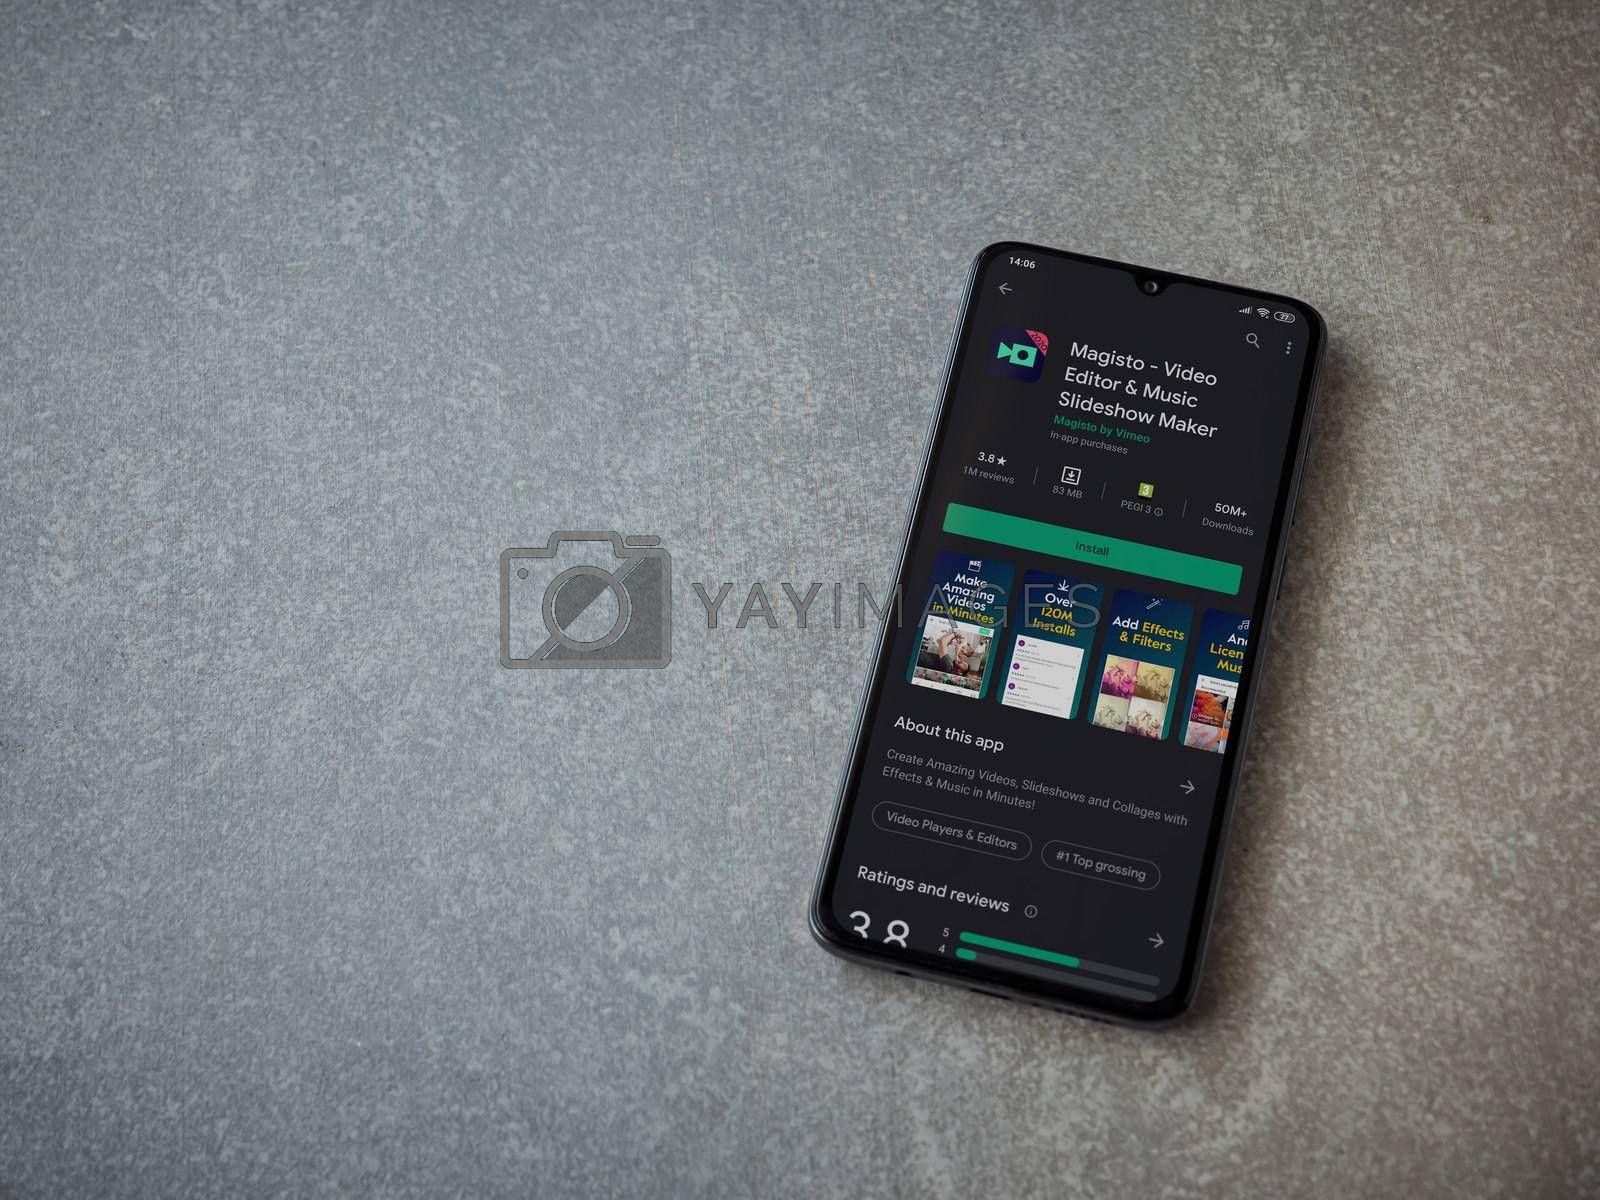 Lod, Israel - July 8, 2020: Magisto - Video Editor and Movie Maker app play store page on the display of a black mobile smartphone on ceramic stone background. Top view flat lay with copy space.